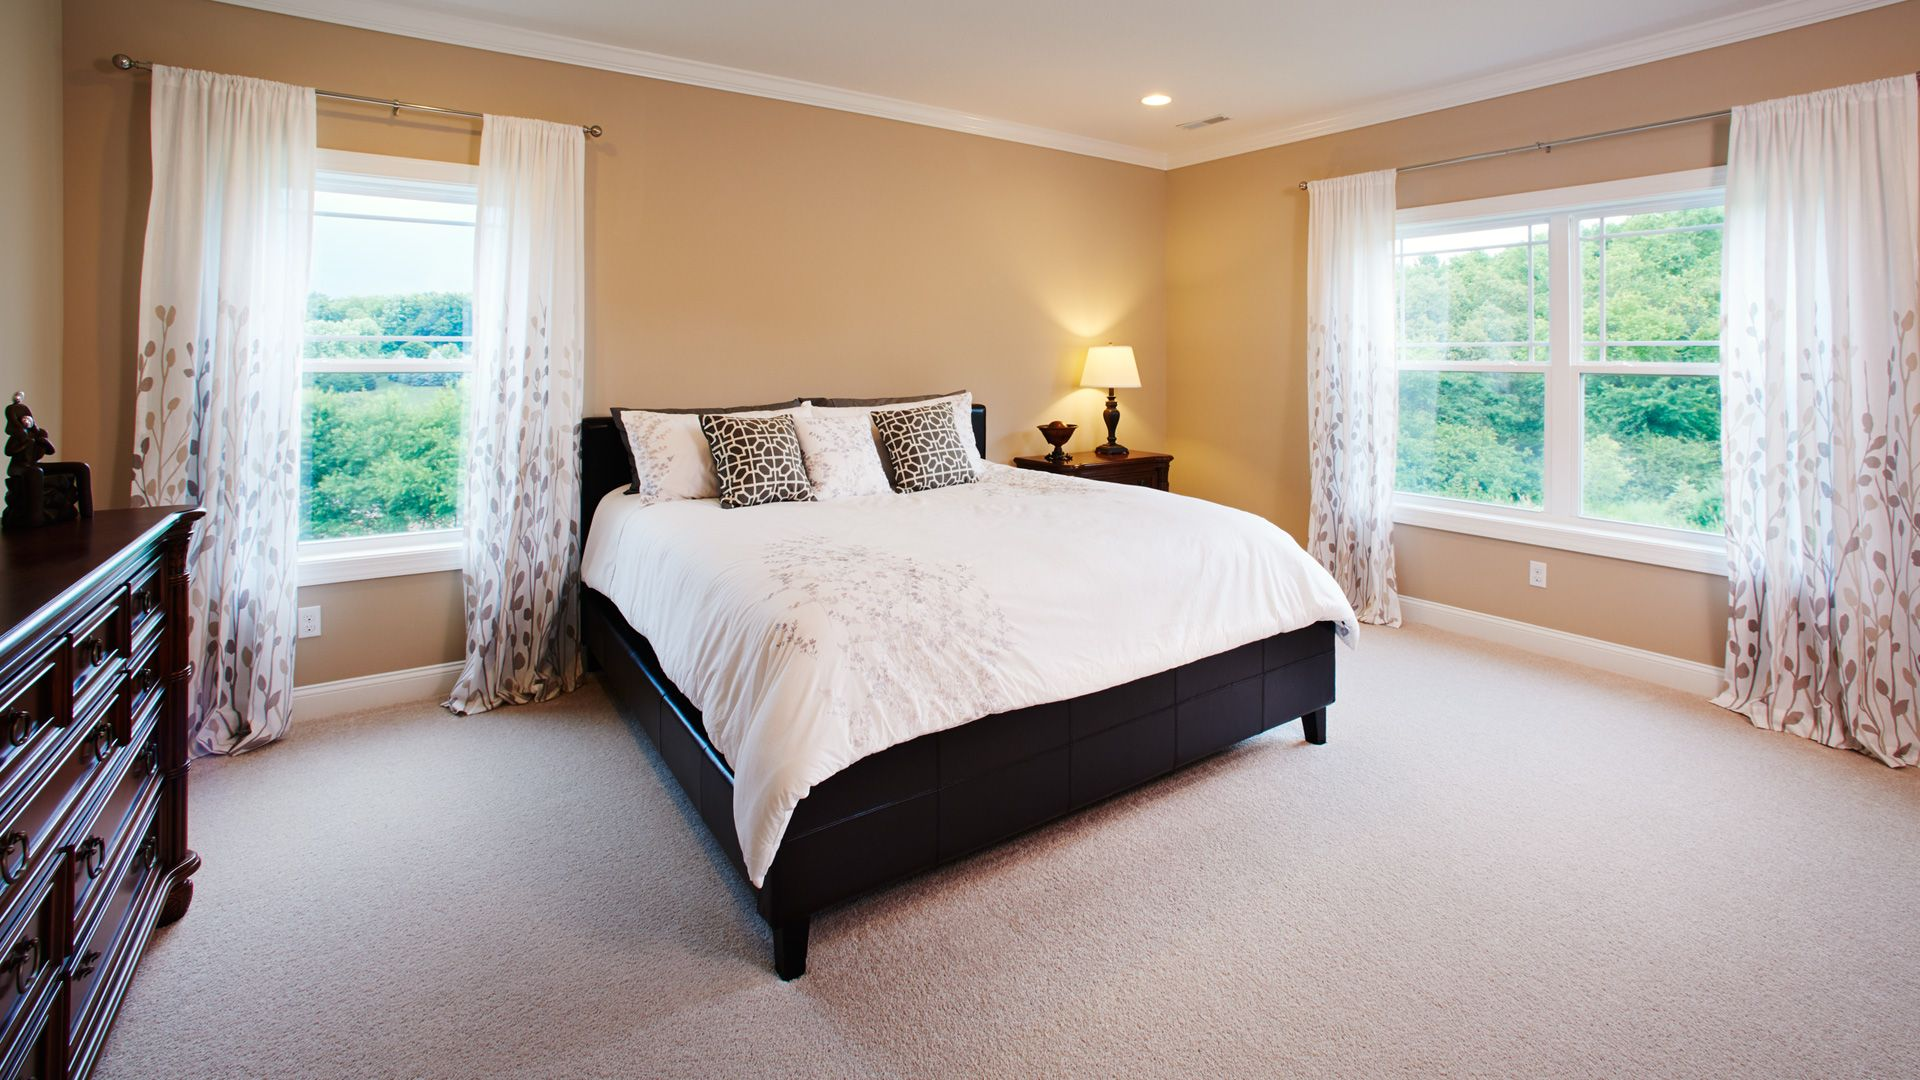 Bedroom featured in the Montgomery By S & A Homes in York, PA